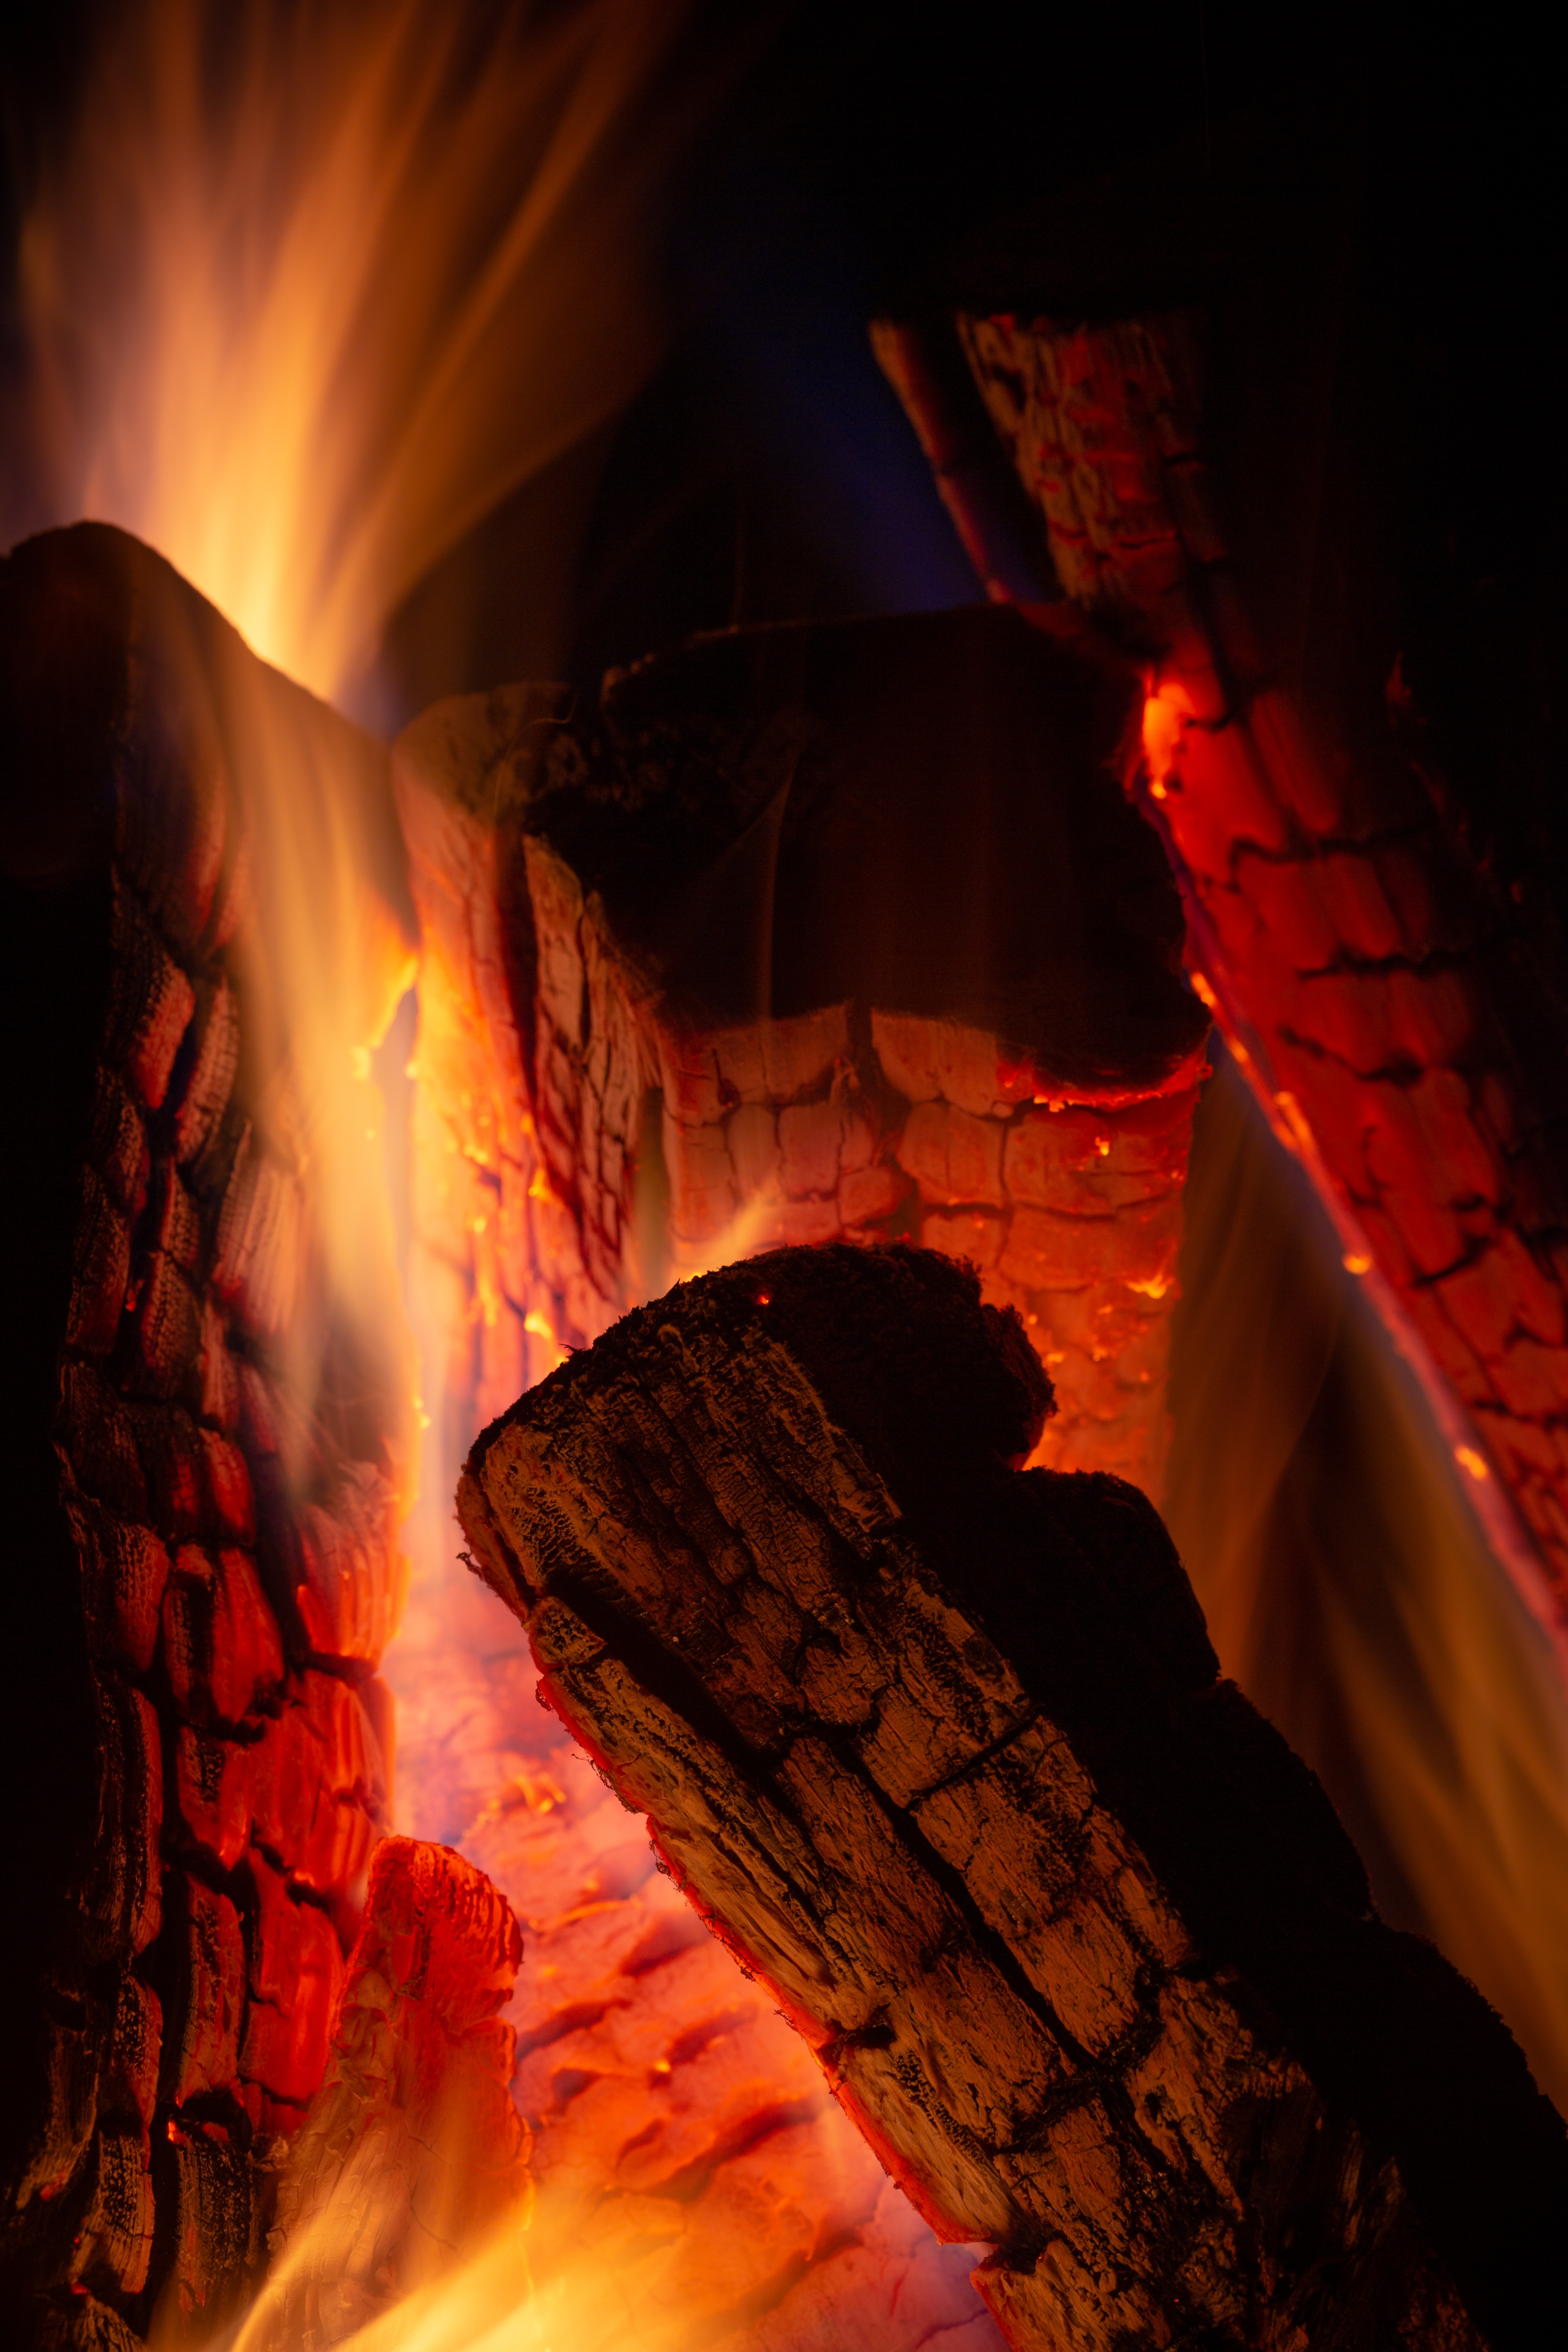 84494 Screensavers and Wallpapers Firewood for phone. Download Fire, Coals, Dark, Flame, Firewood, To Burn, Burn pictures for free